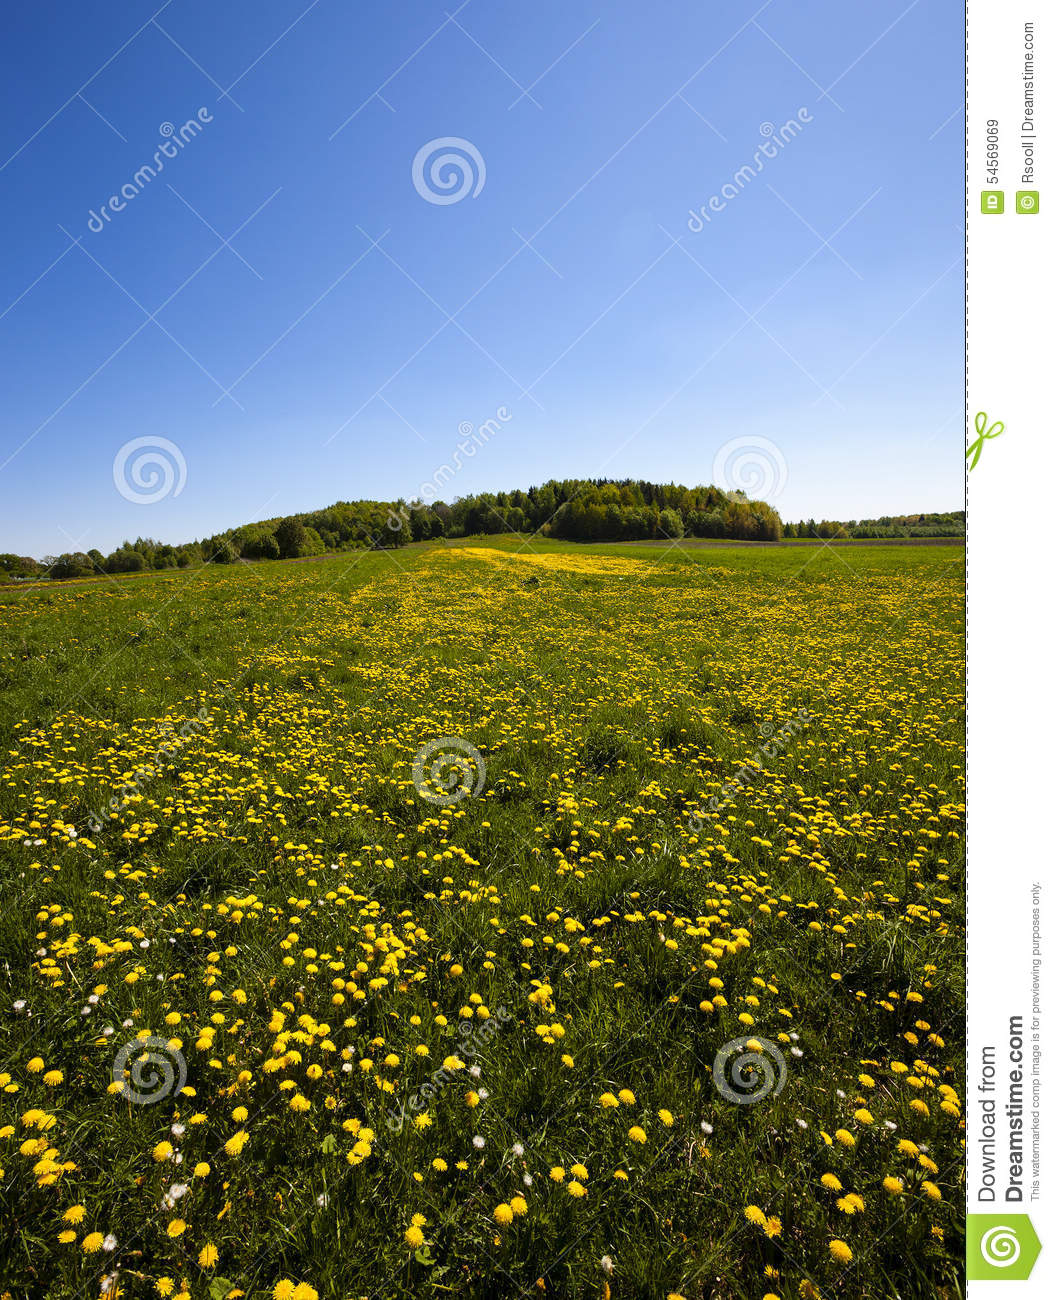 Dandelion Field Stock Image. Image Of June, Grass, Blossom